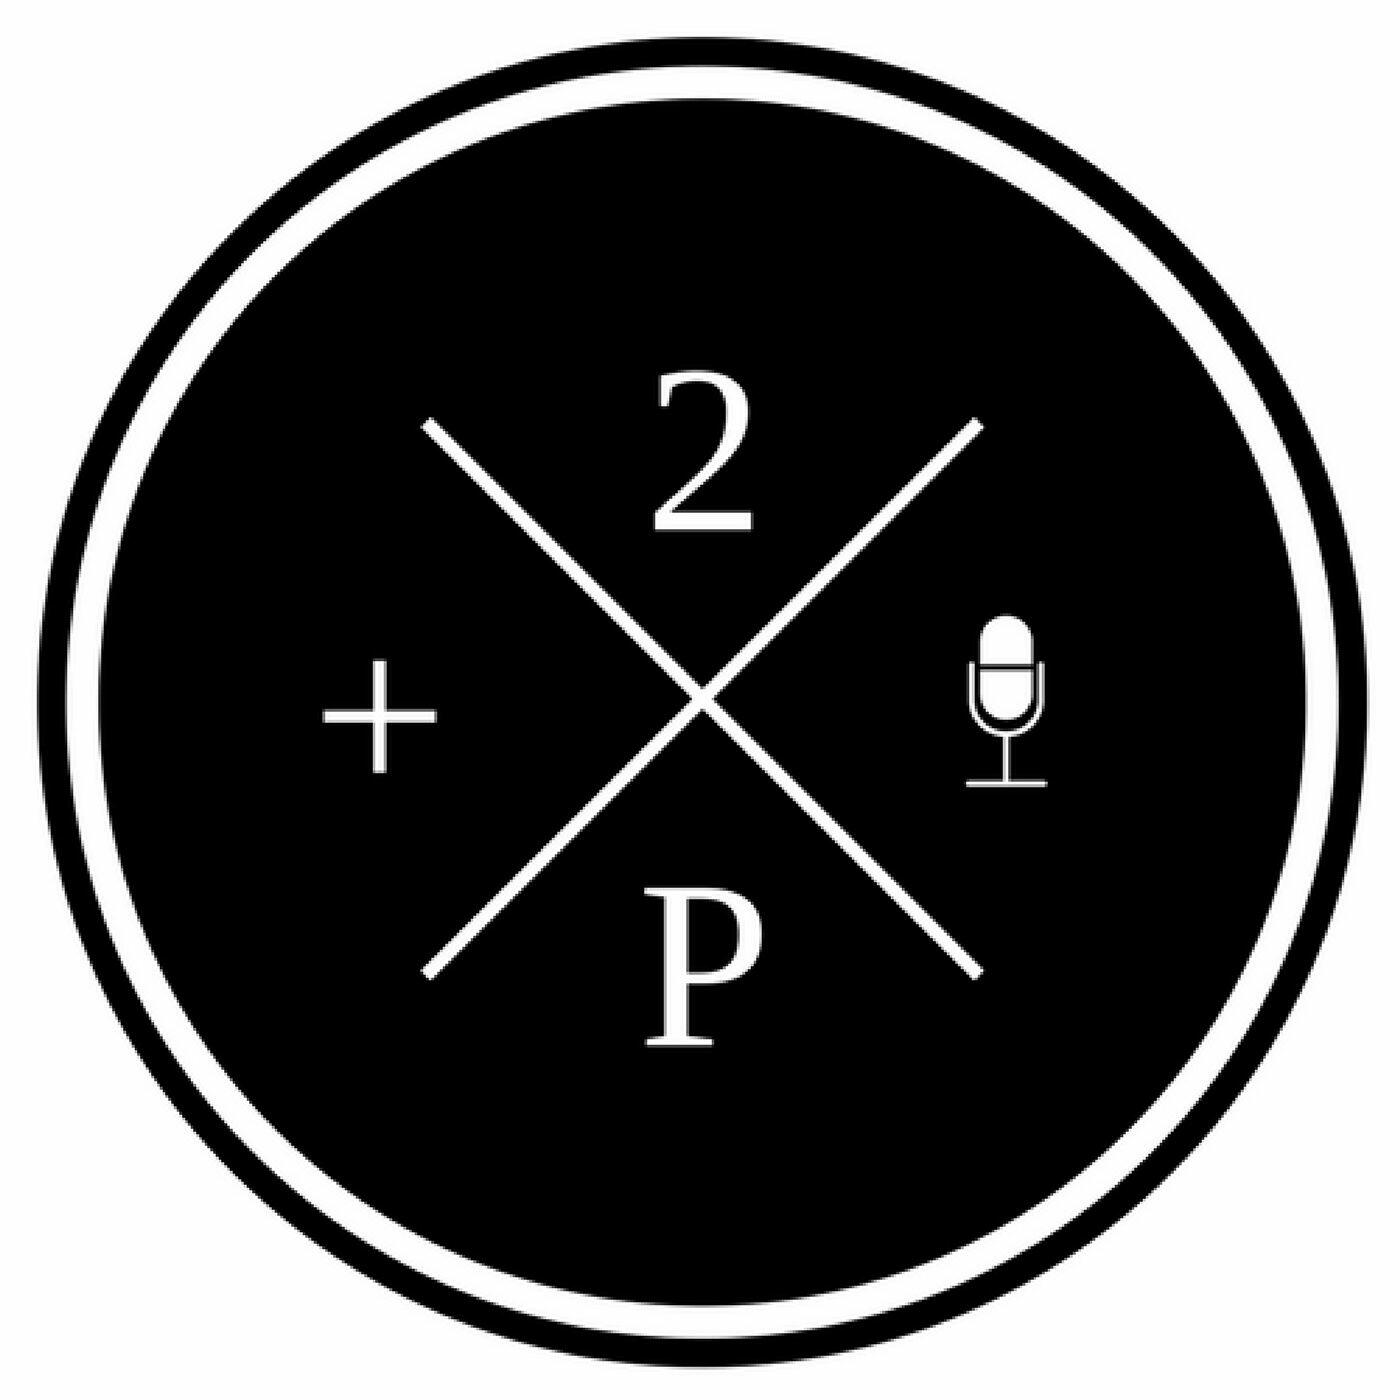 Listen to the 2 Pentecostals and a Microphone Episode - Interview